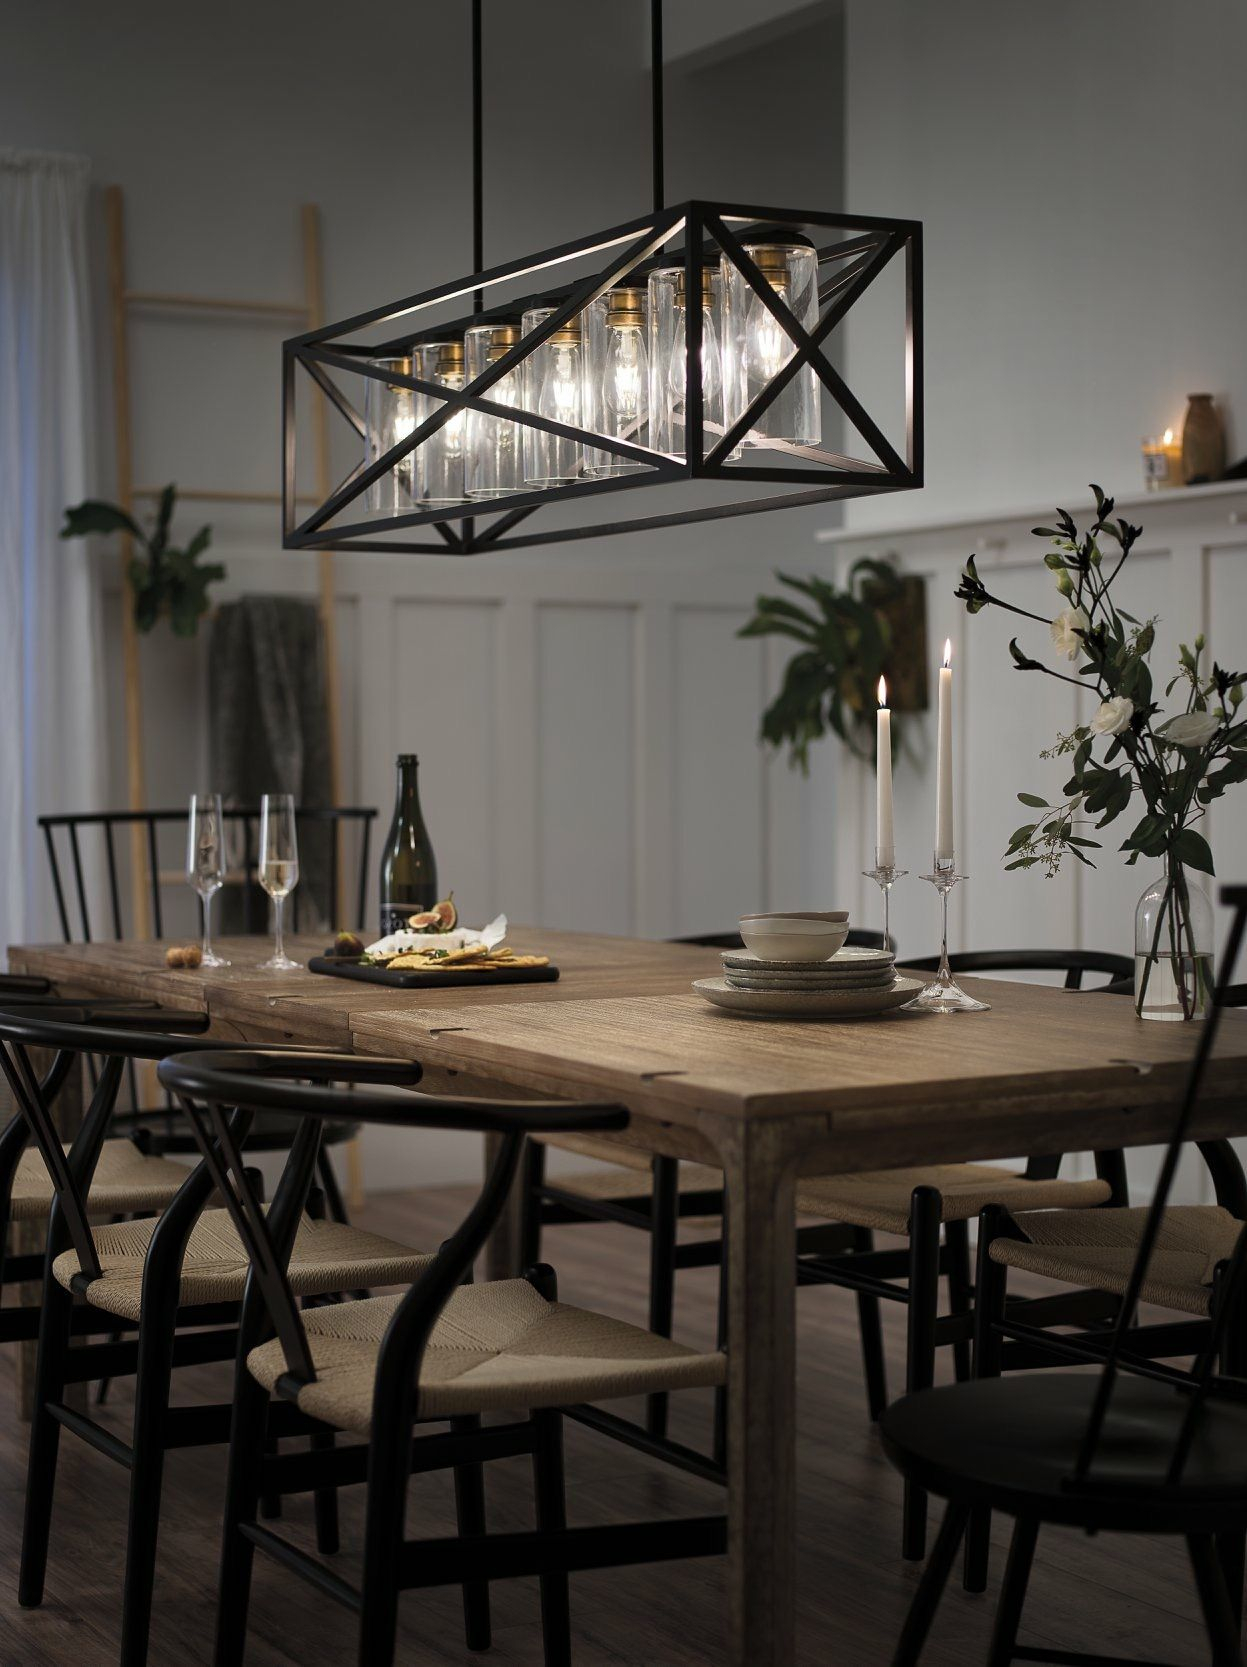 Kichler Linear Chandelier In Dining Room | Lighting Throughout Freemont 5 Light Kitchen Island Linear Chandeliers (View 11 of 30)